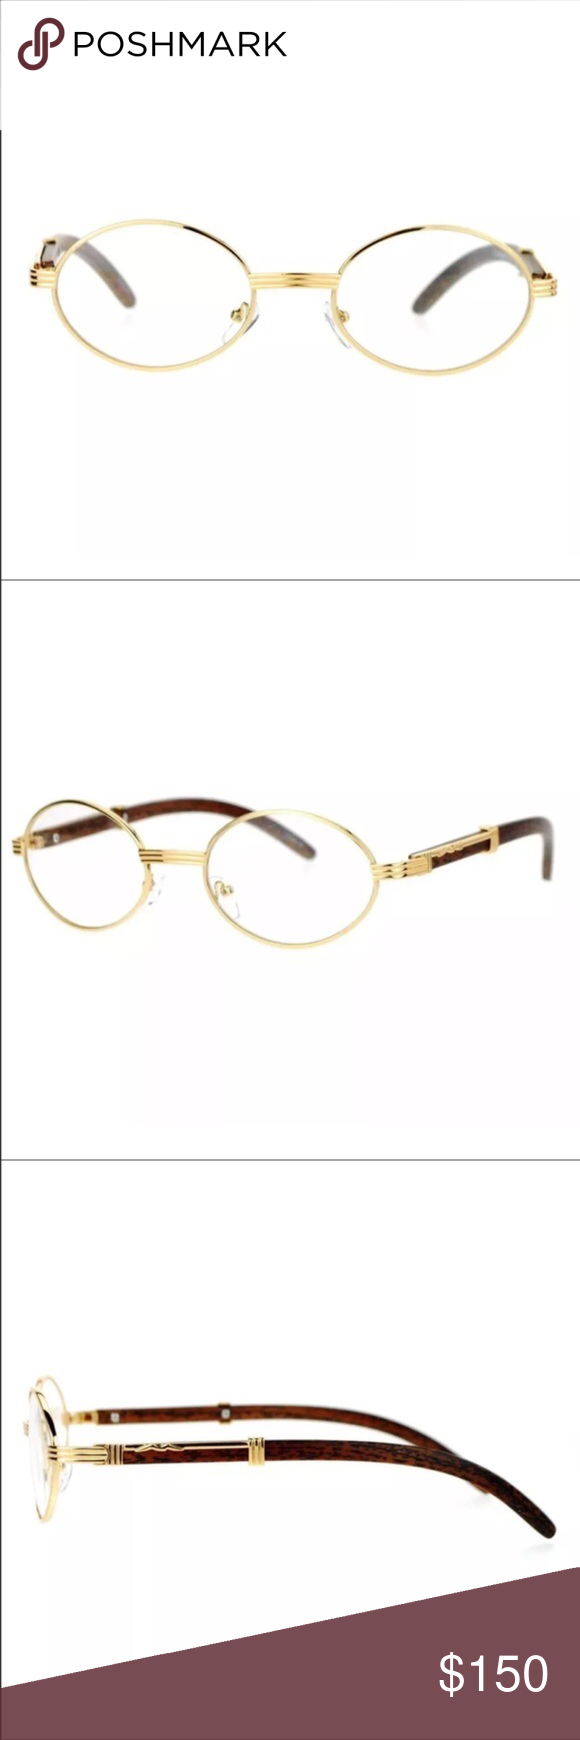 449d62613a1 Gold Frame Vintage Migos Style Clear Oval Glasses Composite frame ...